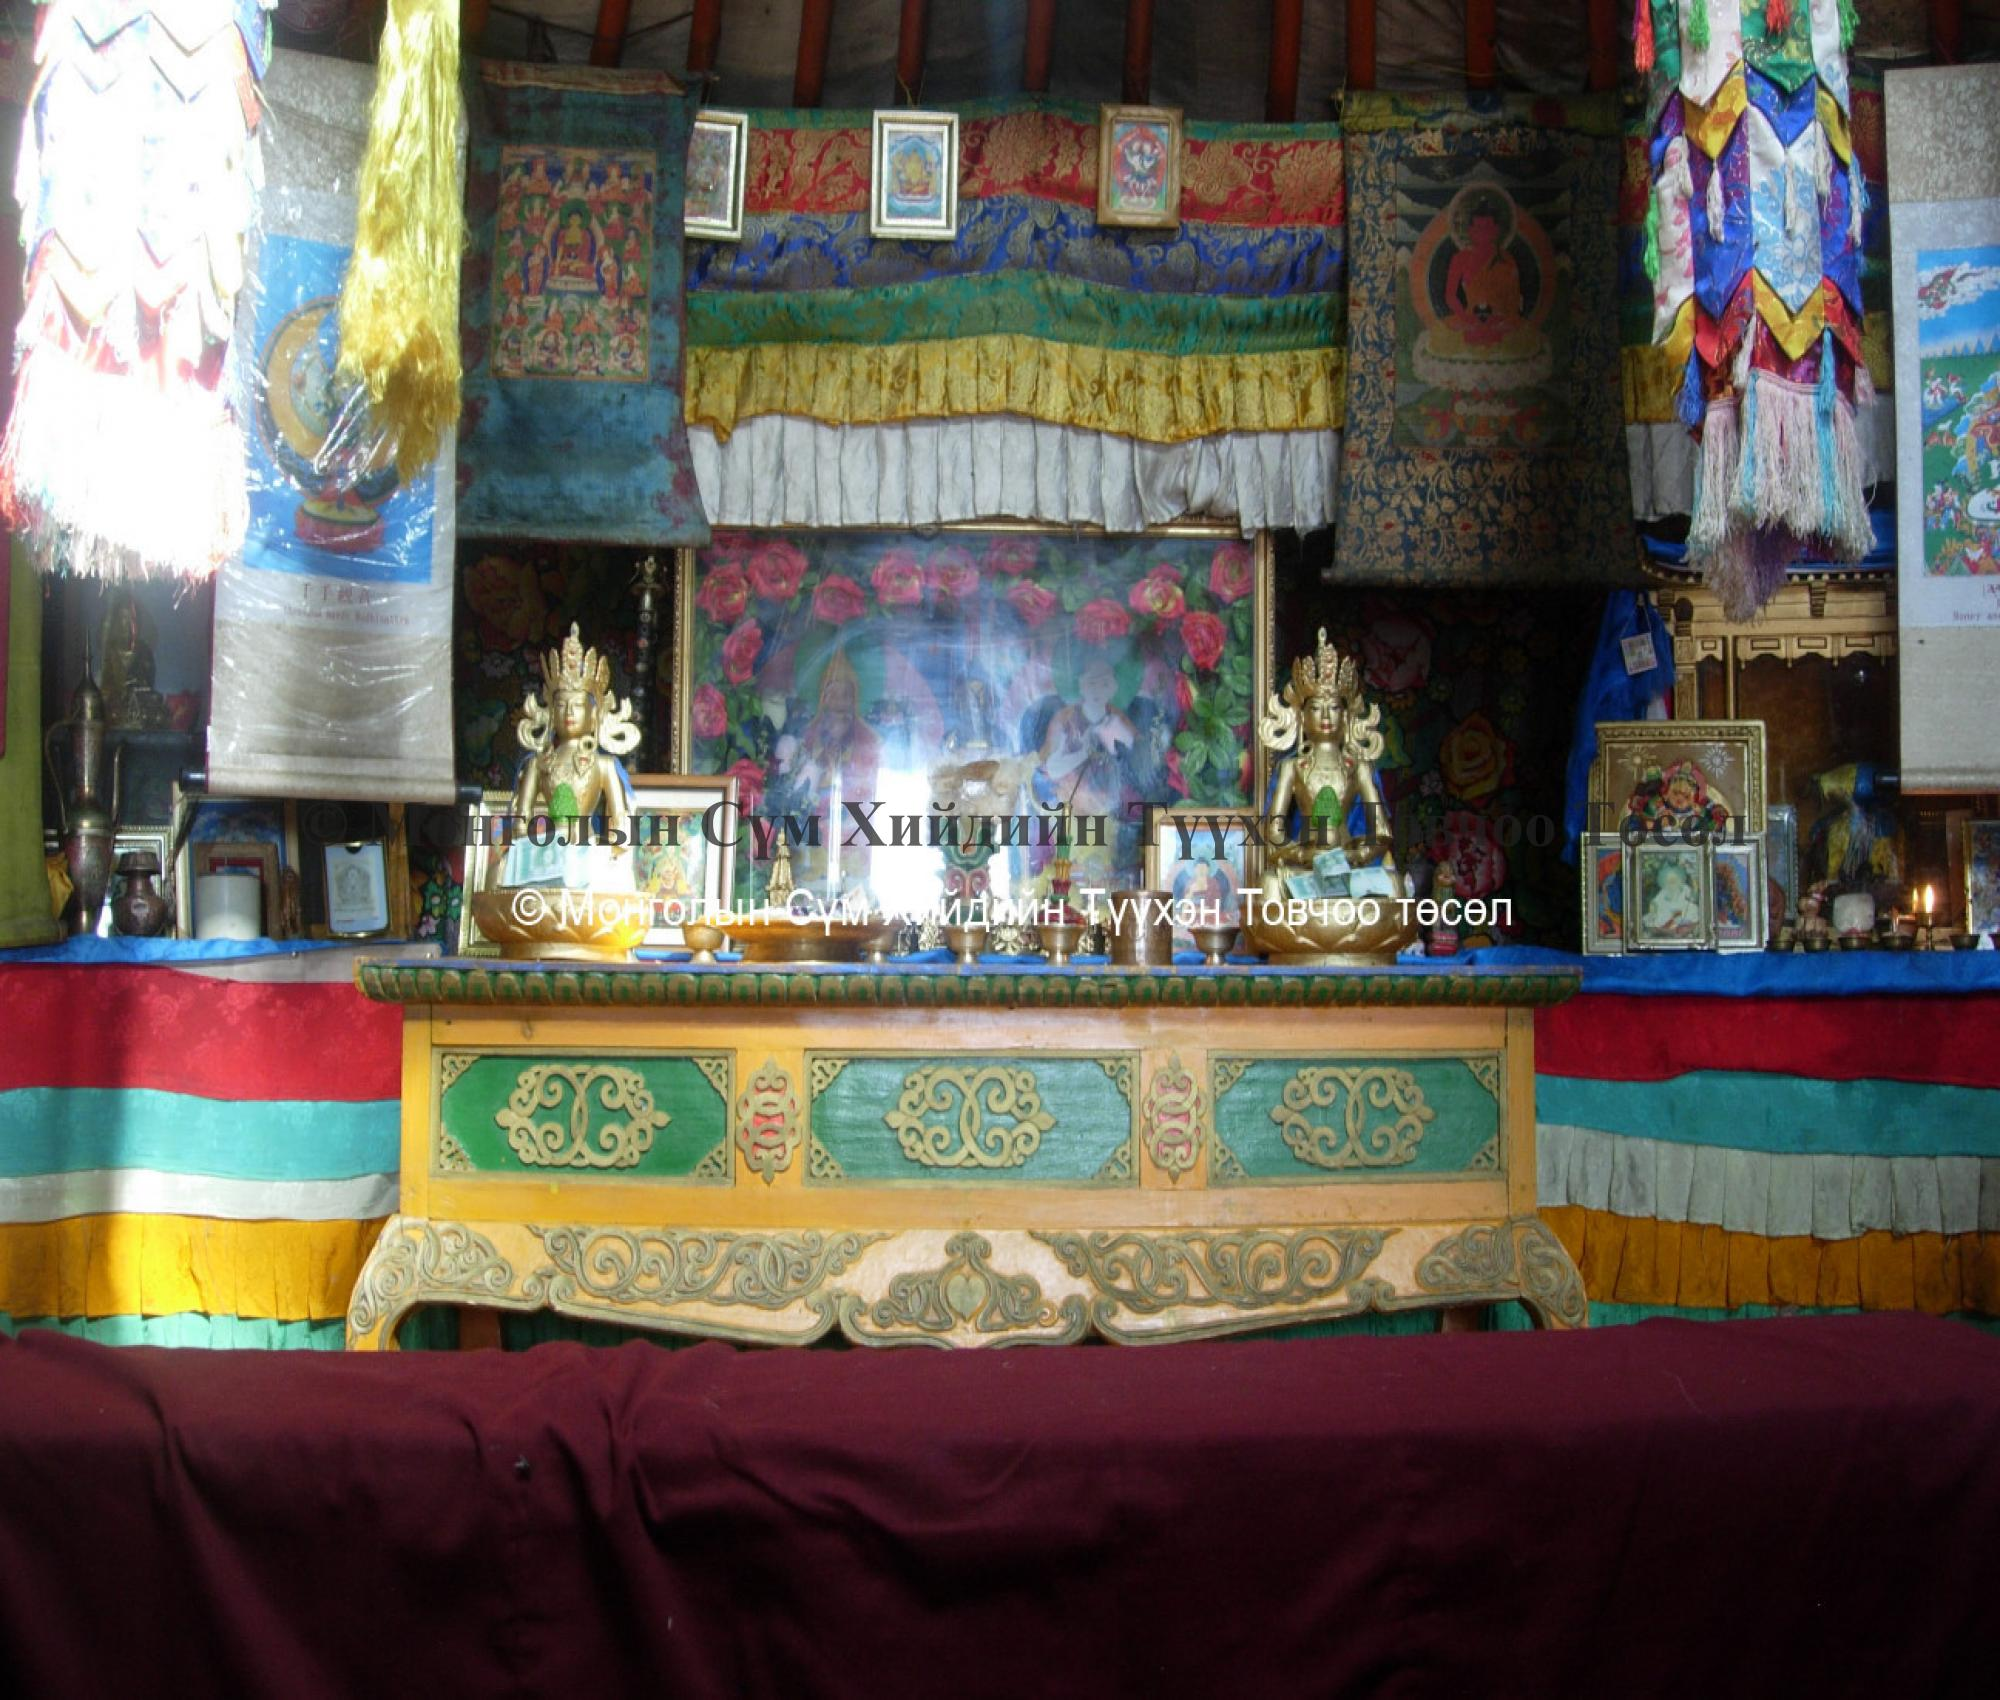 Main 'altar' in the temple